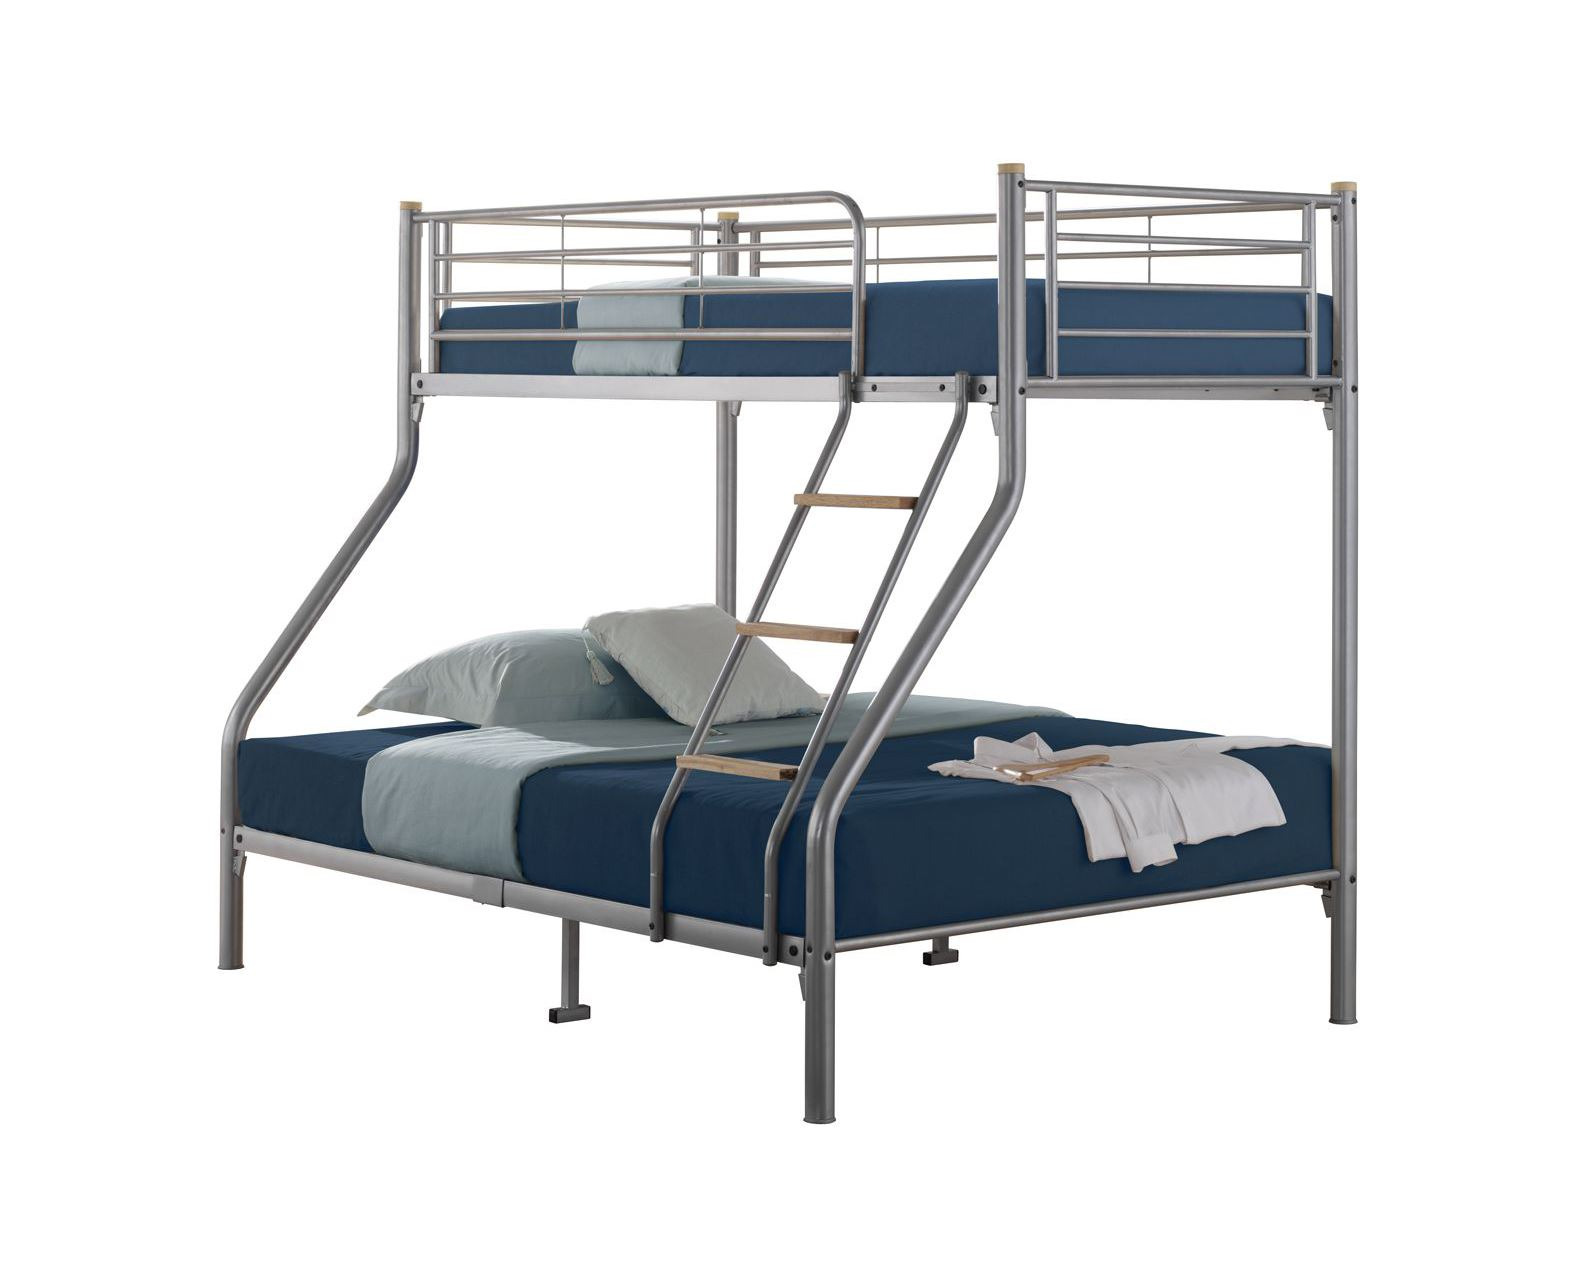 quality triple sleeper metal bunk bed silver with 2. Black Bedroom Furniture Sets. Home Design Ideas